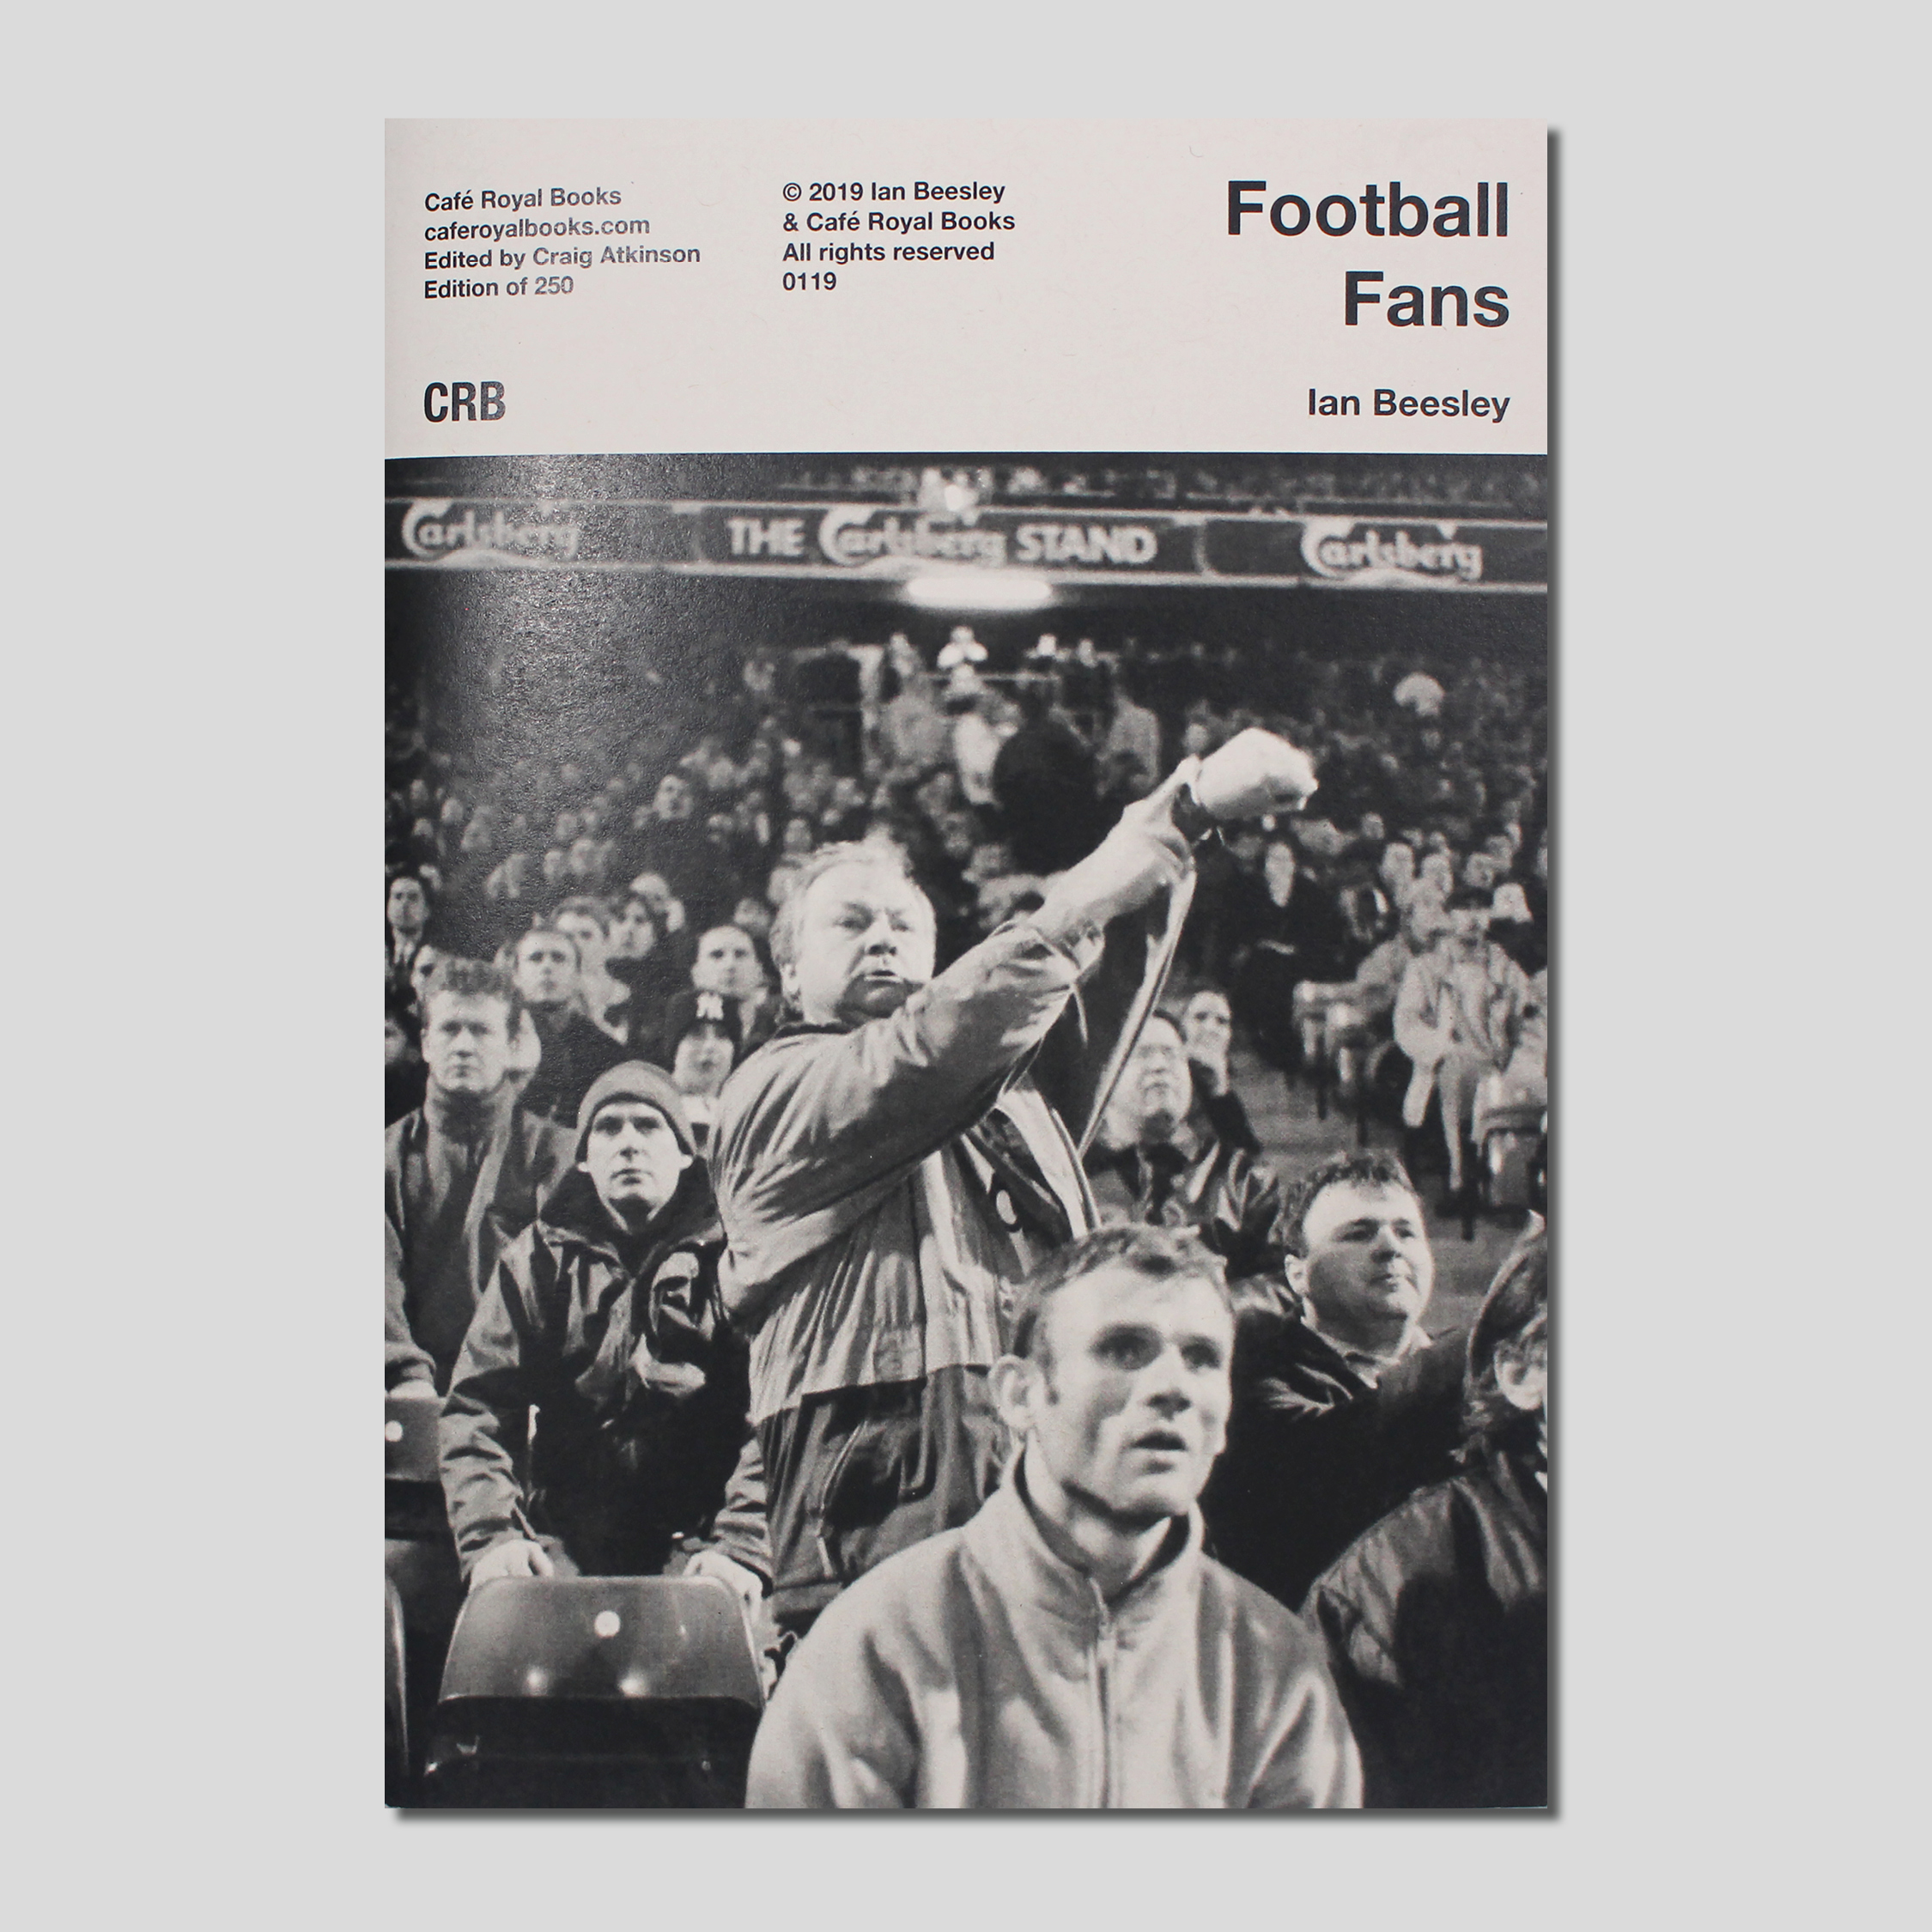 Football Fans by Ian Beesley